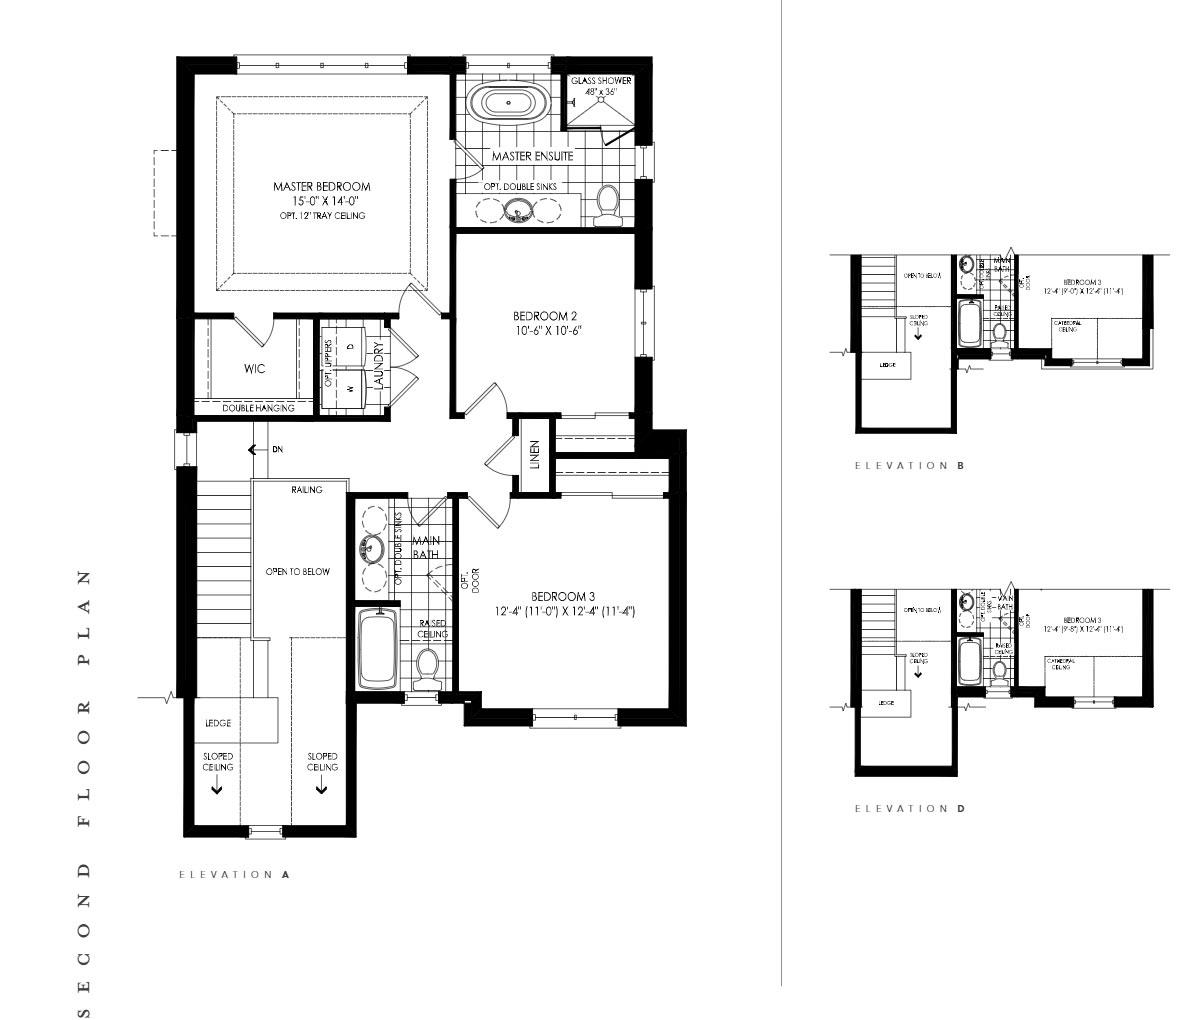 Lot 104 - Havelock B Floorplan 2